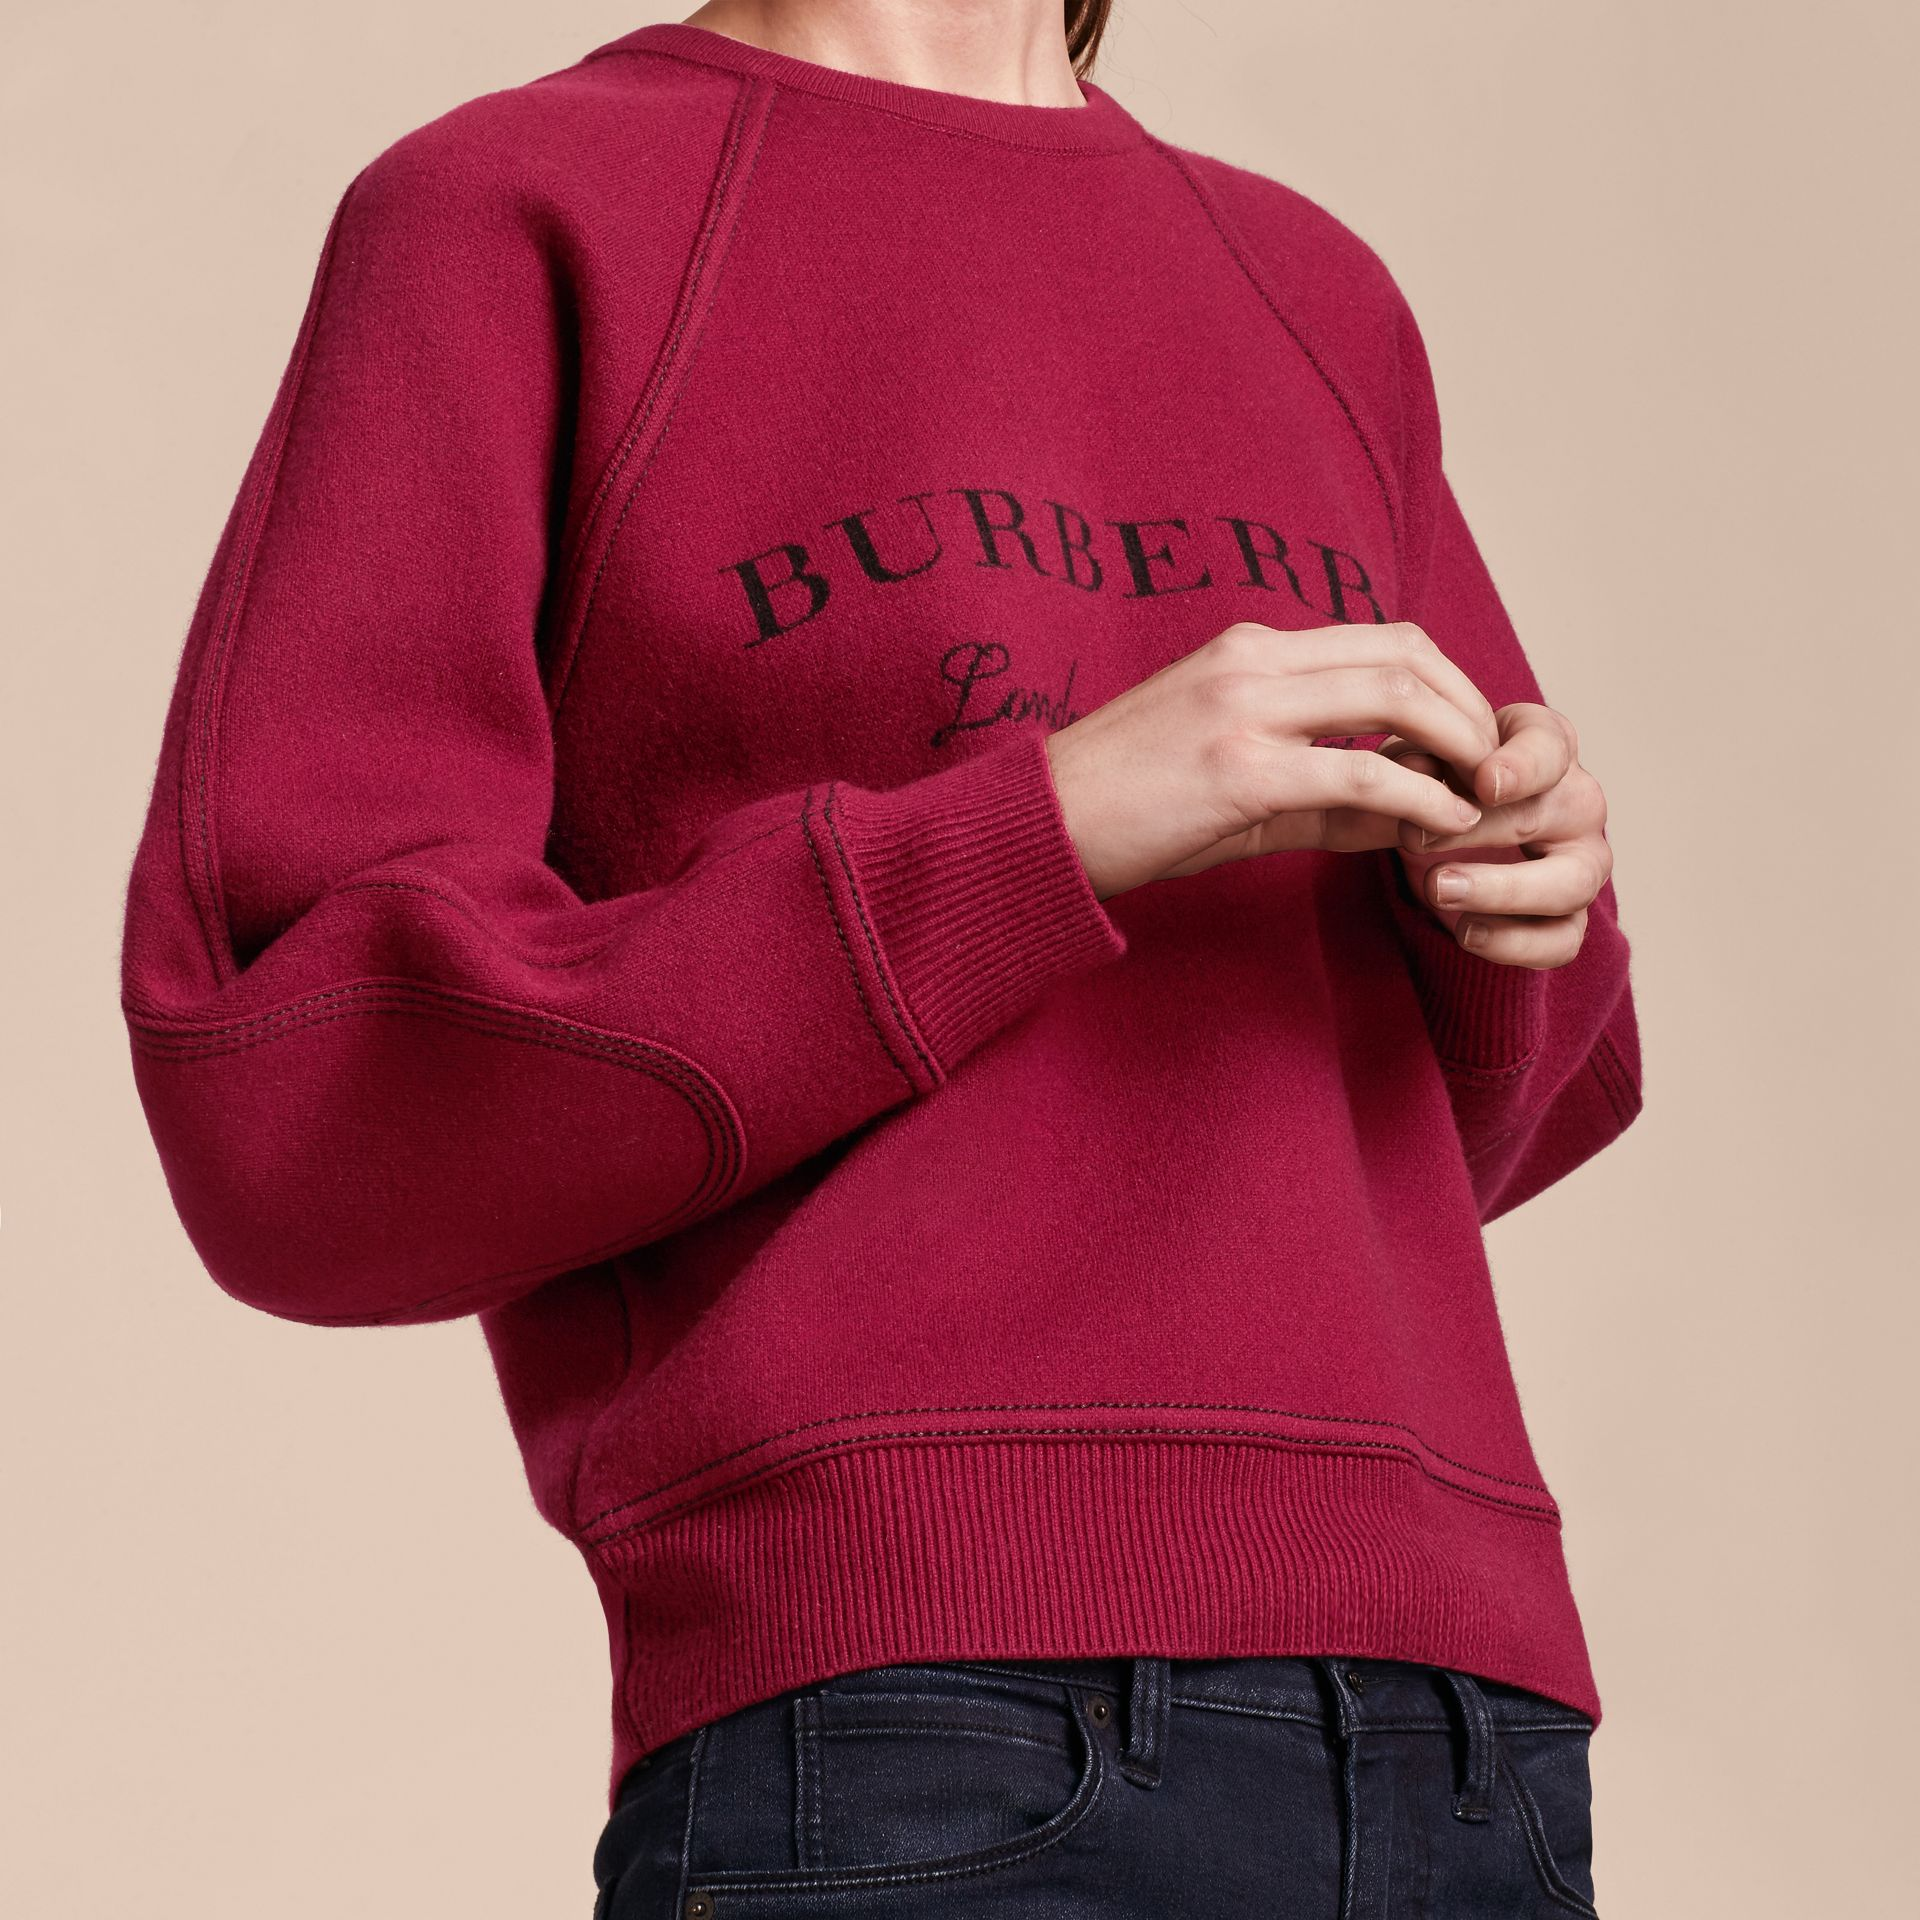 Topstitch Detail Wool Cashmere Blend Sweater in Burgundy - Women | Burberry - gallery image 5